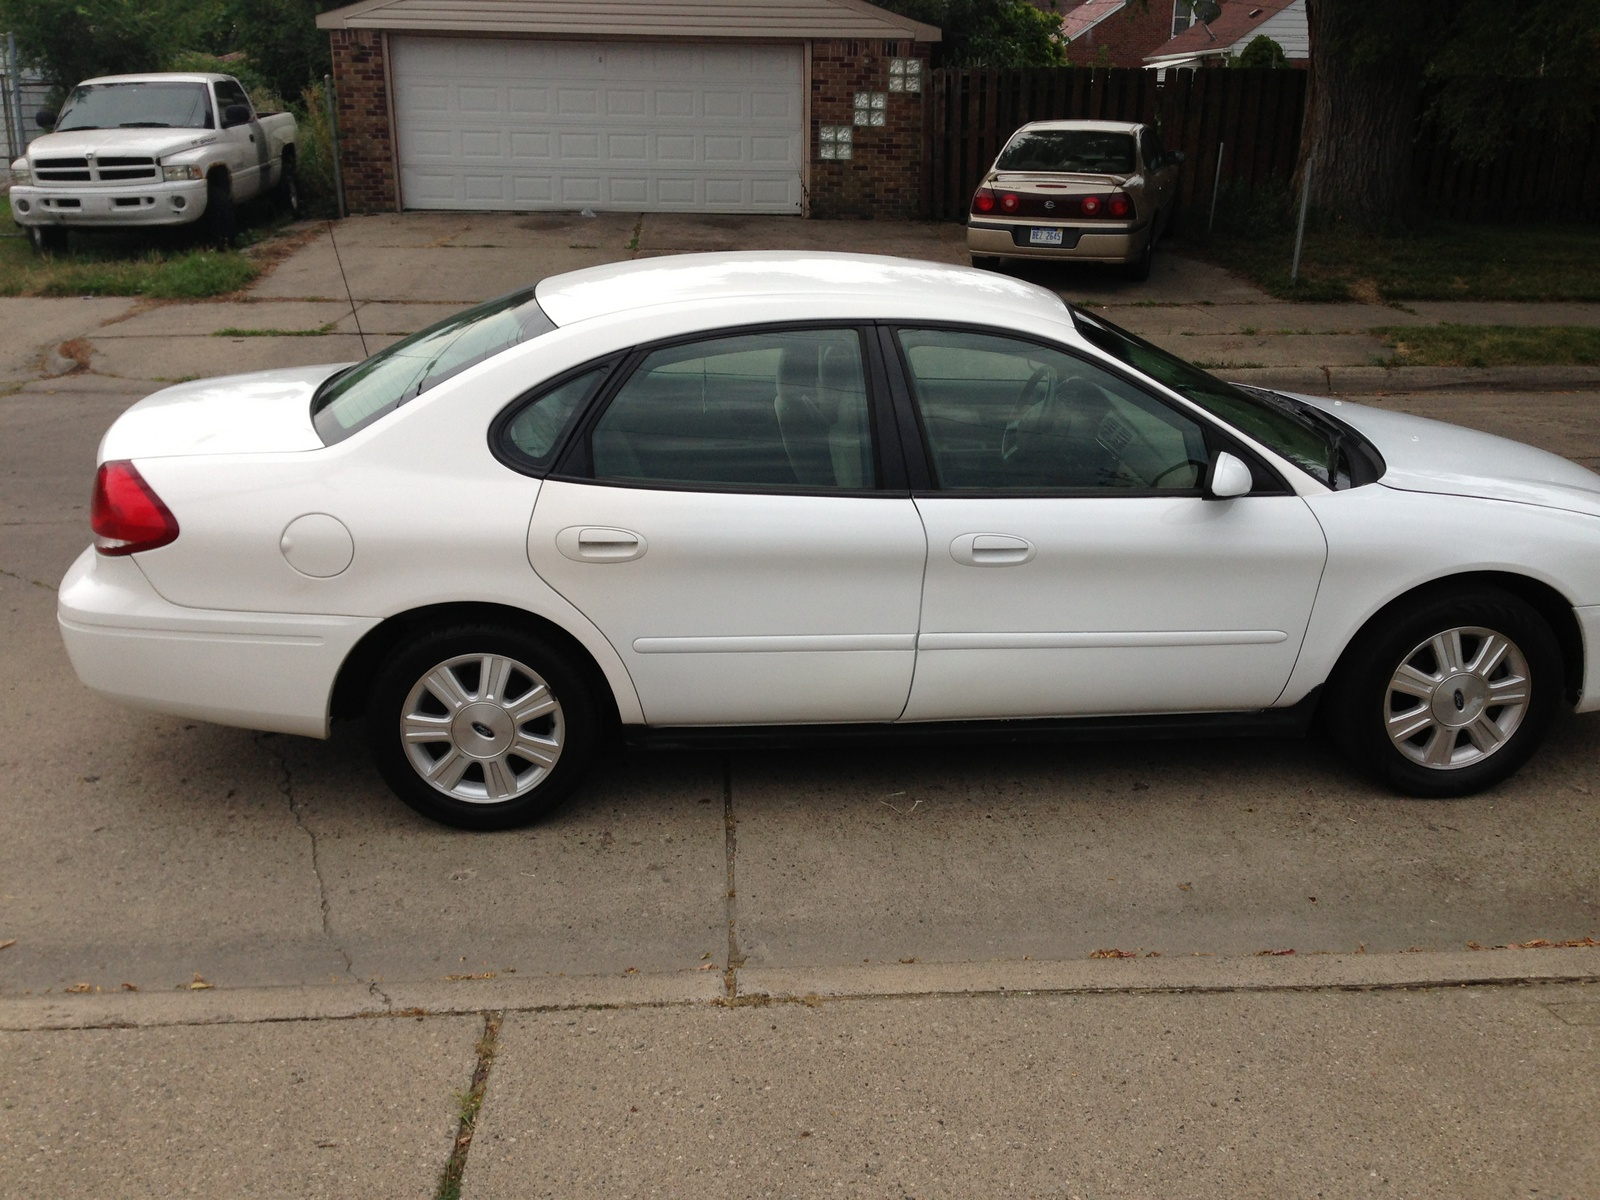 Ford Taurus Se Need Wiring Diagram For 2000 Ford Taurus On 2000 Ford